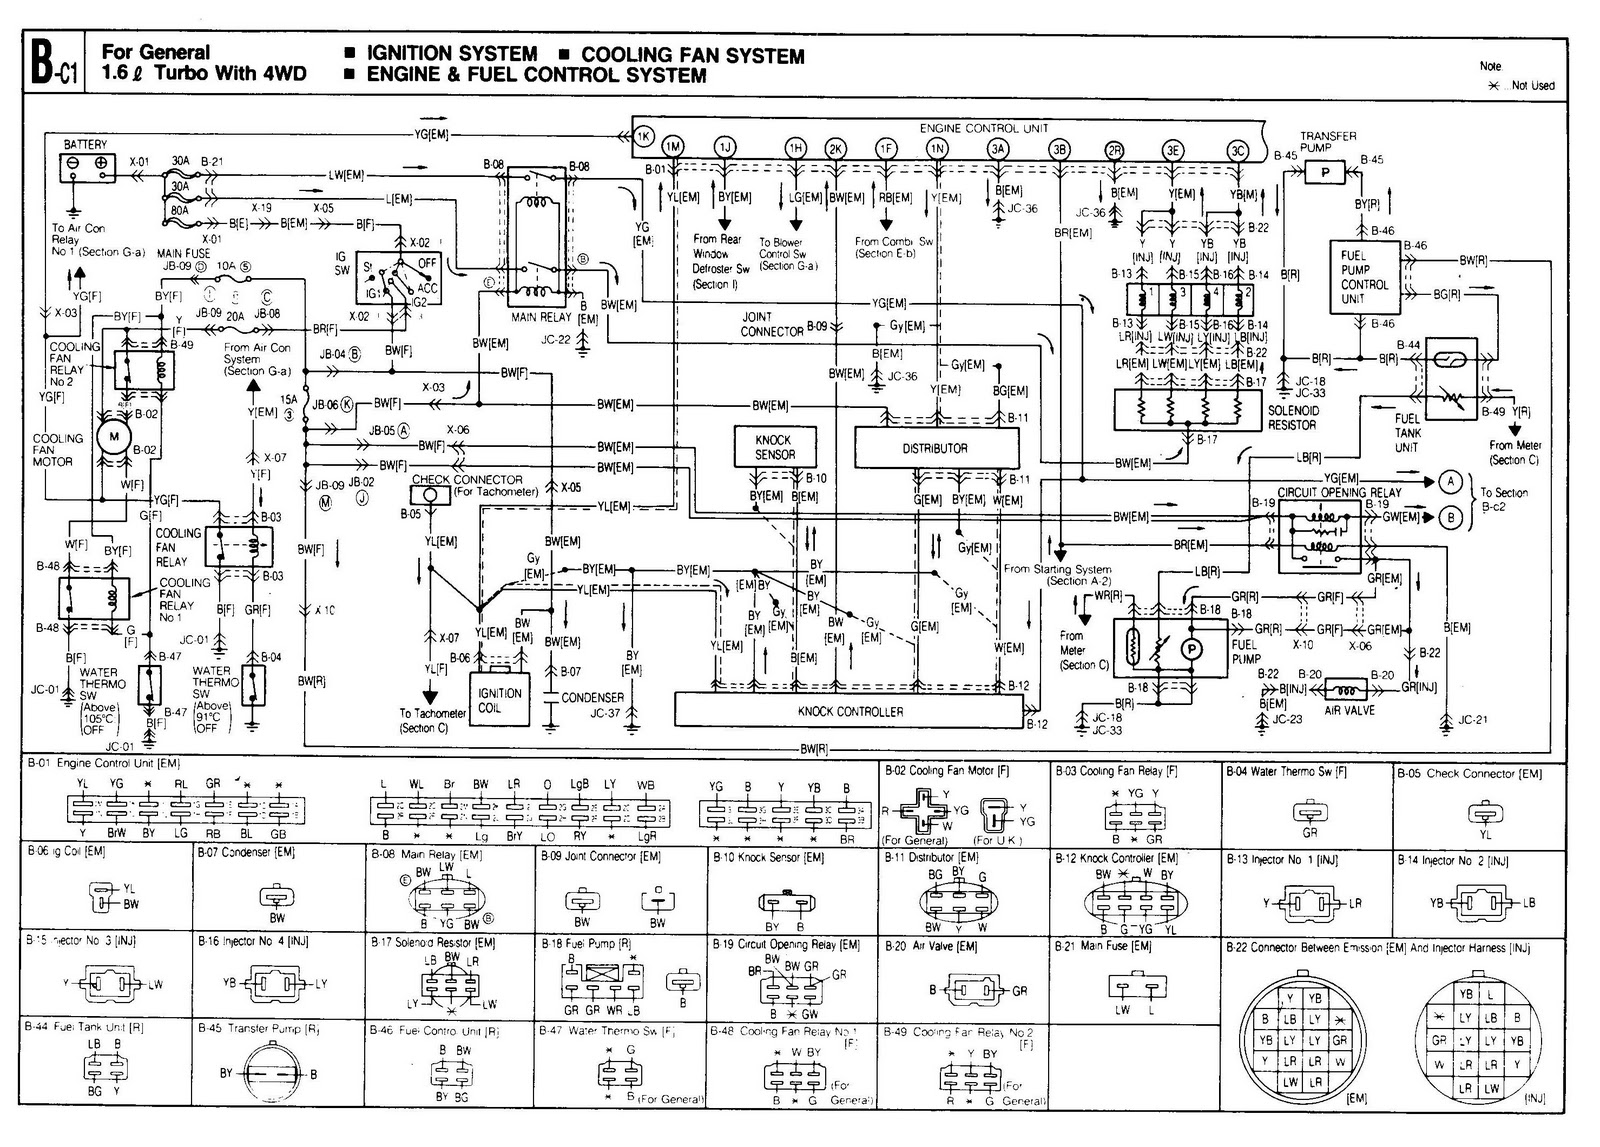 2012_01_01_archive on 16 Pin Wire Harness Diagram